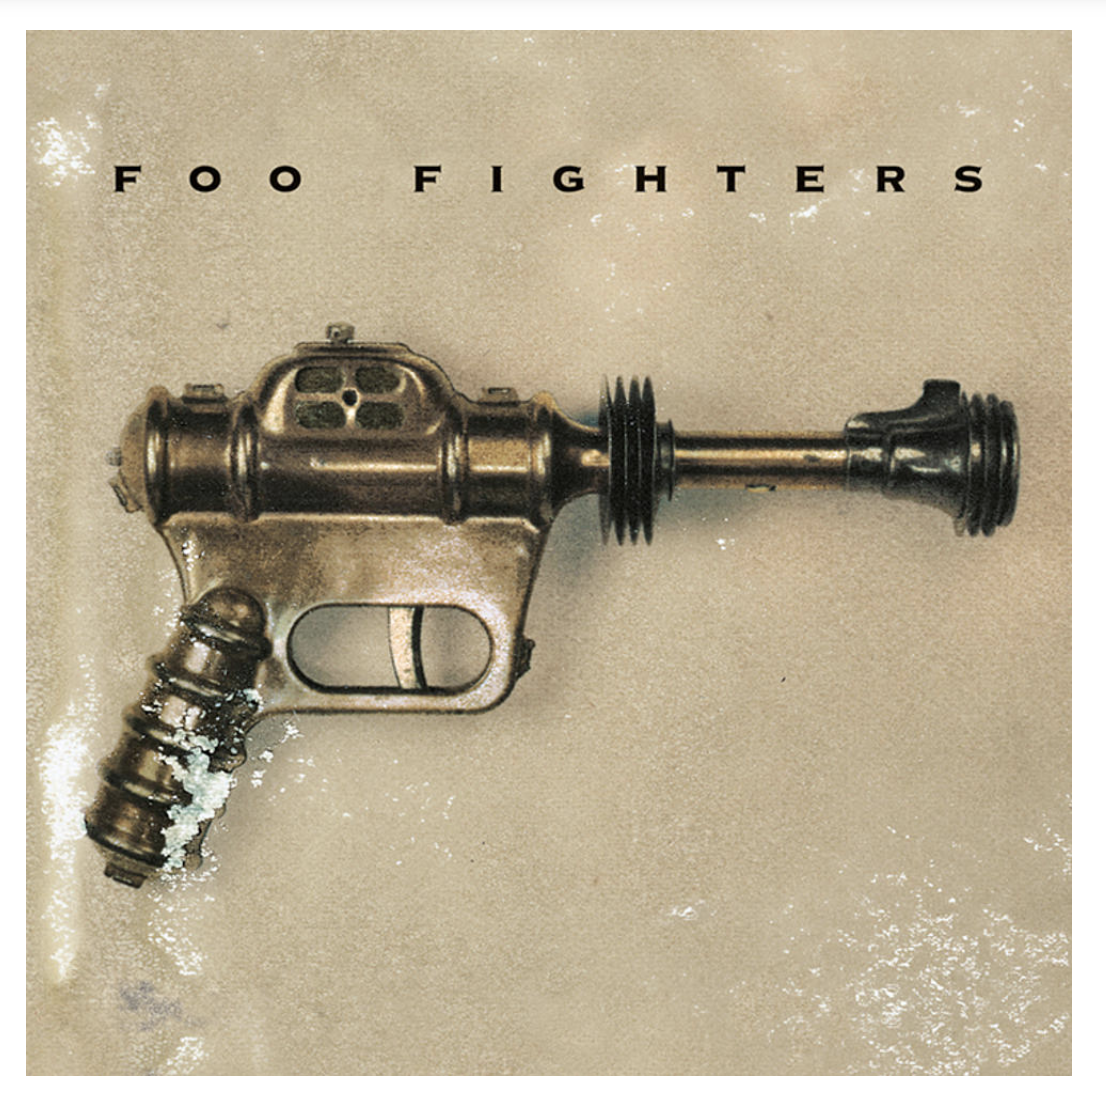 2. 'Foo Fighters' (1995)